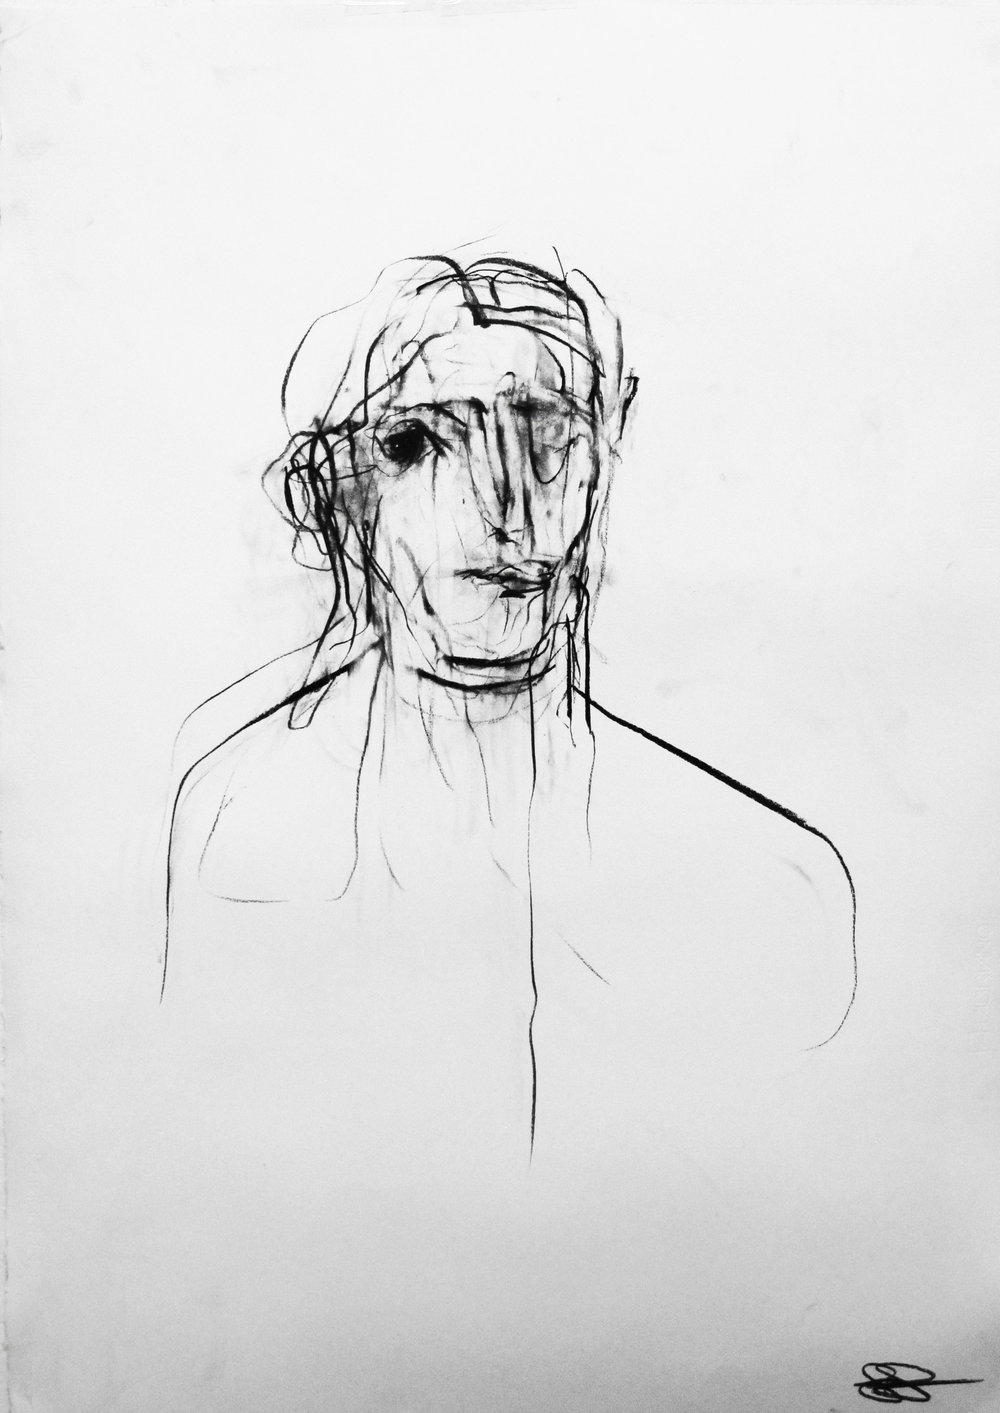 Charcoal_Fabriano paper_70cm x 100cm